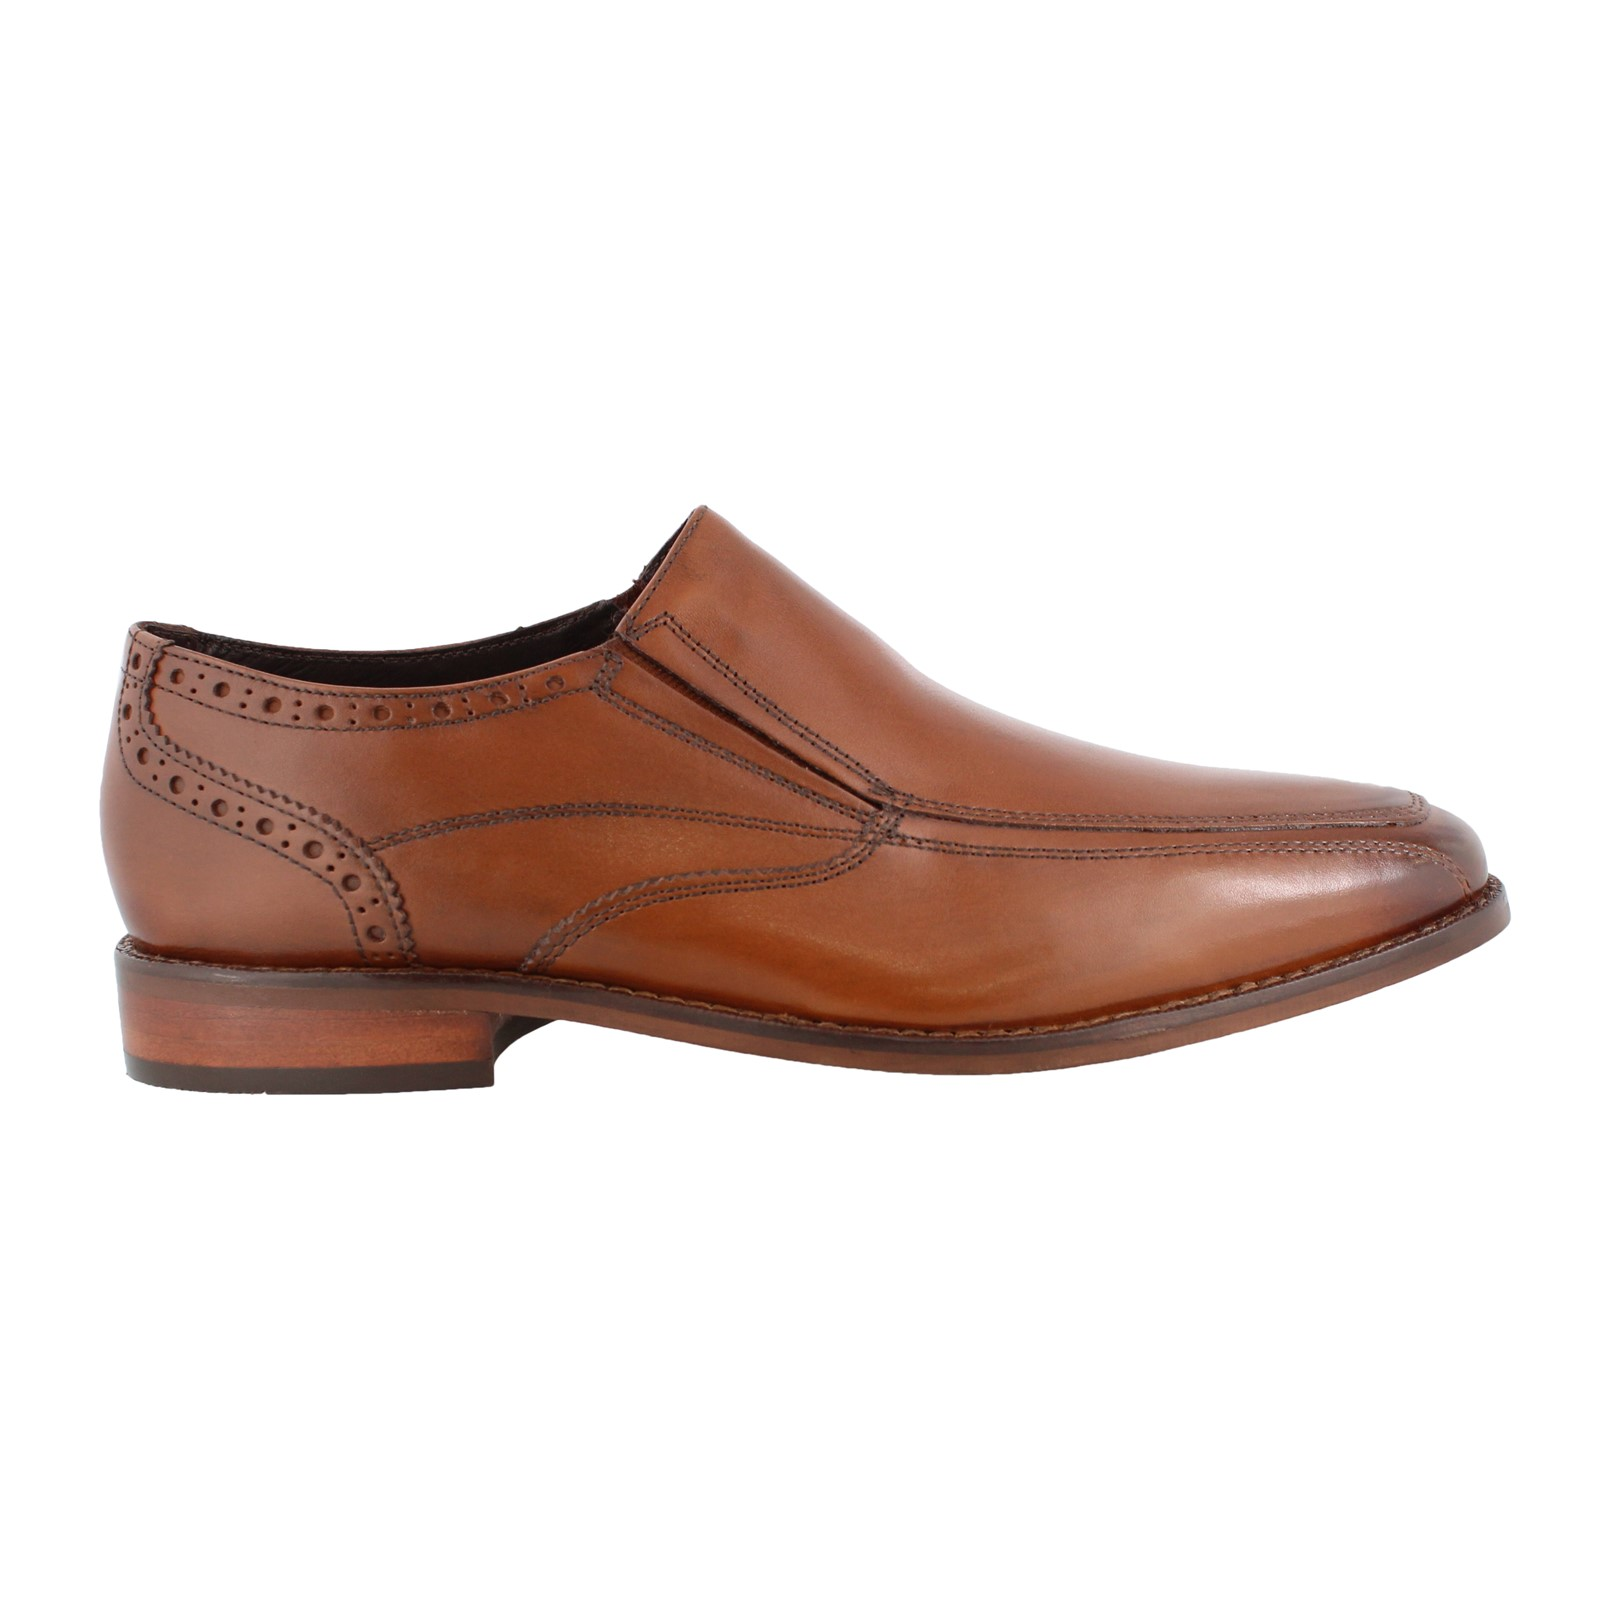 Men's Florsheim, Castellano Moc Toe Slip on Shoes